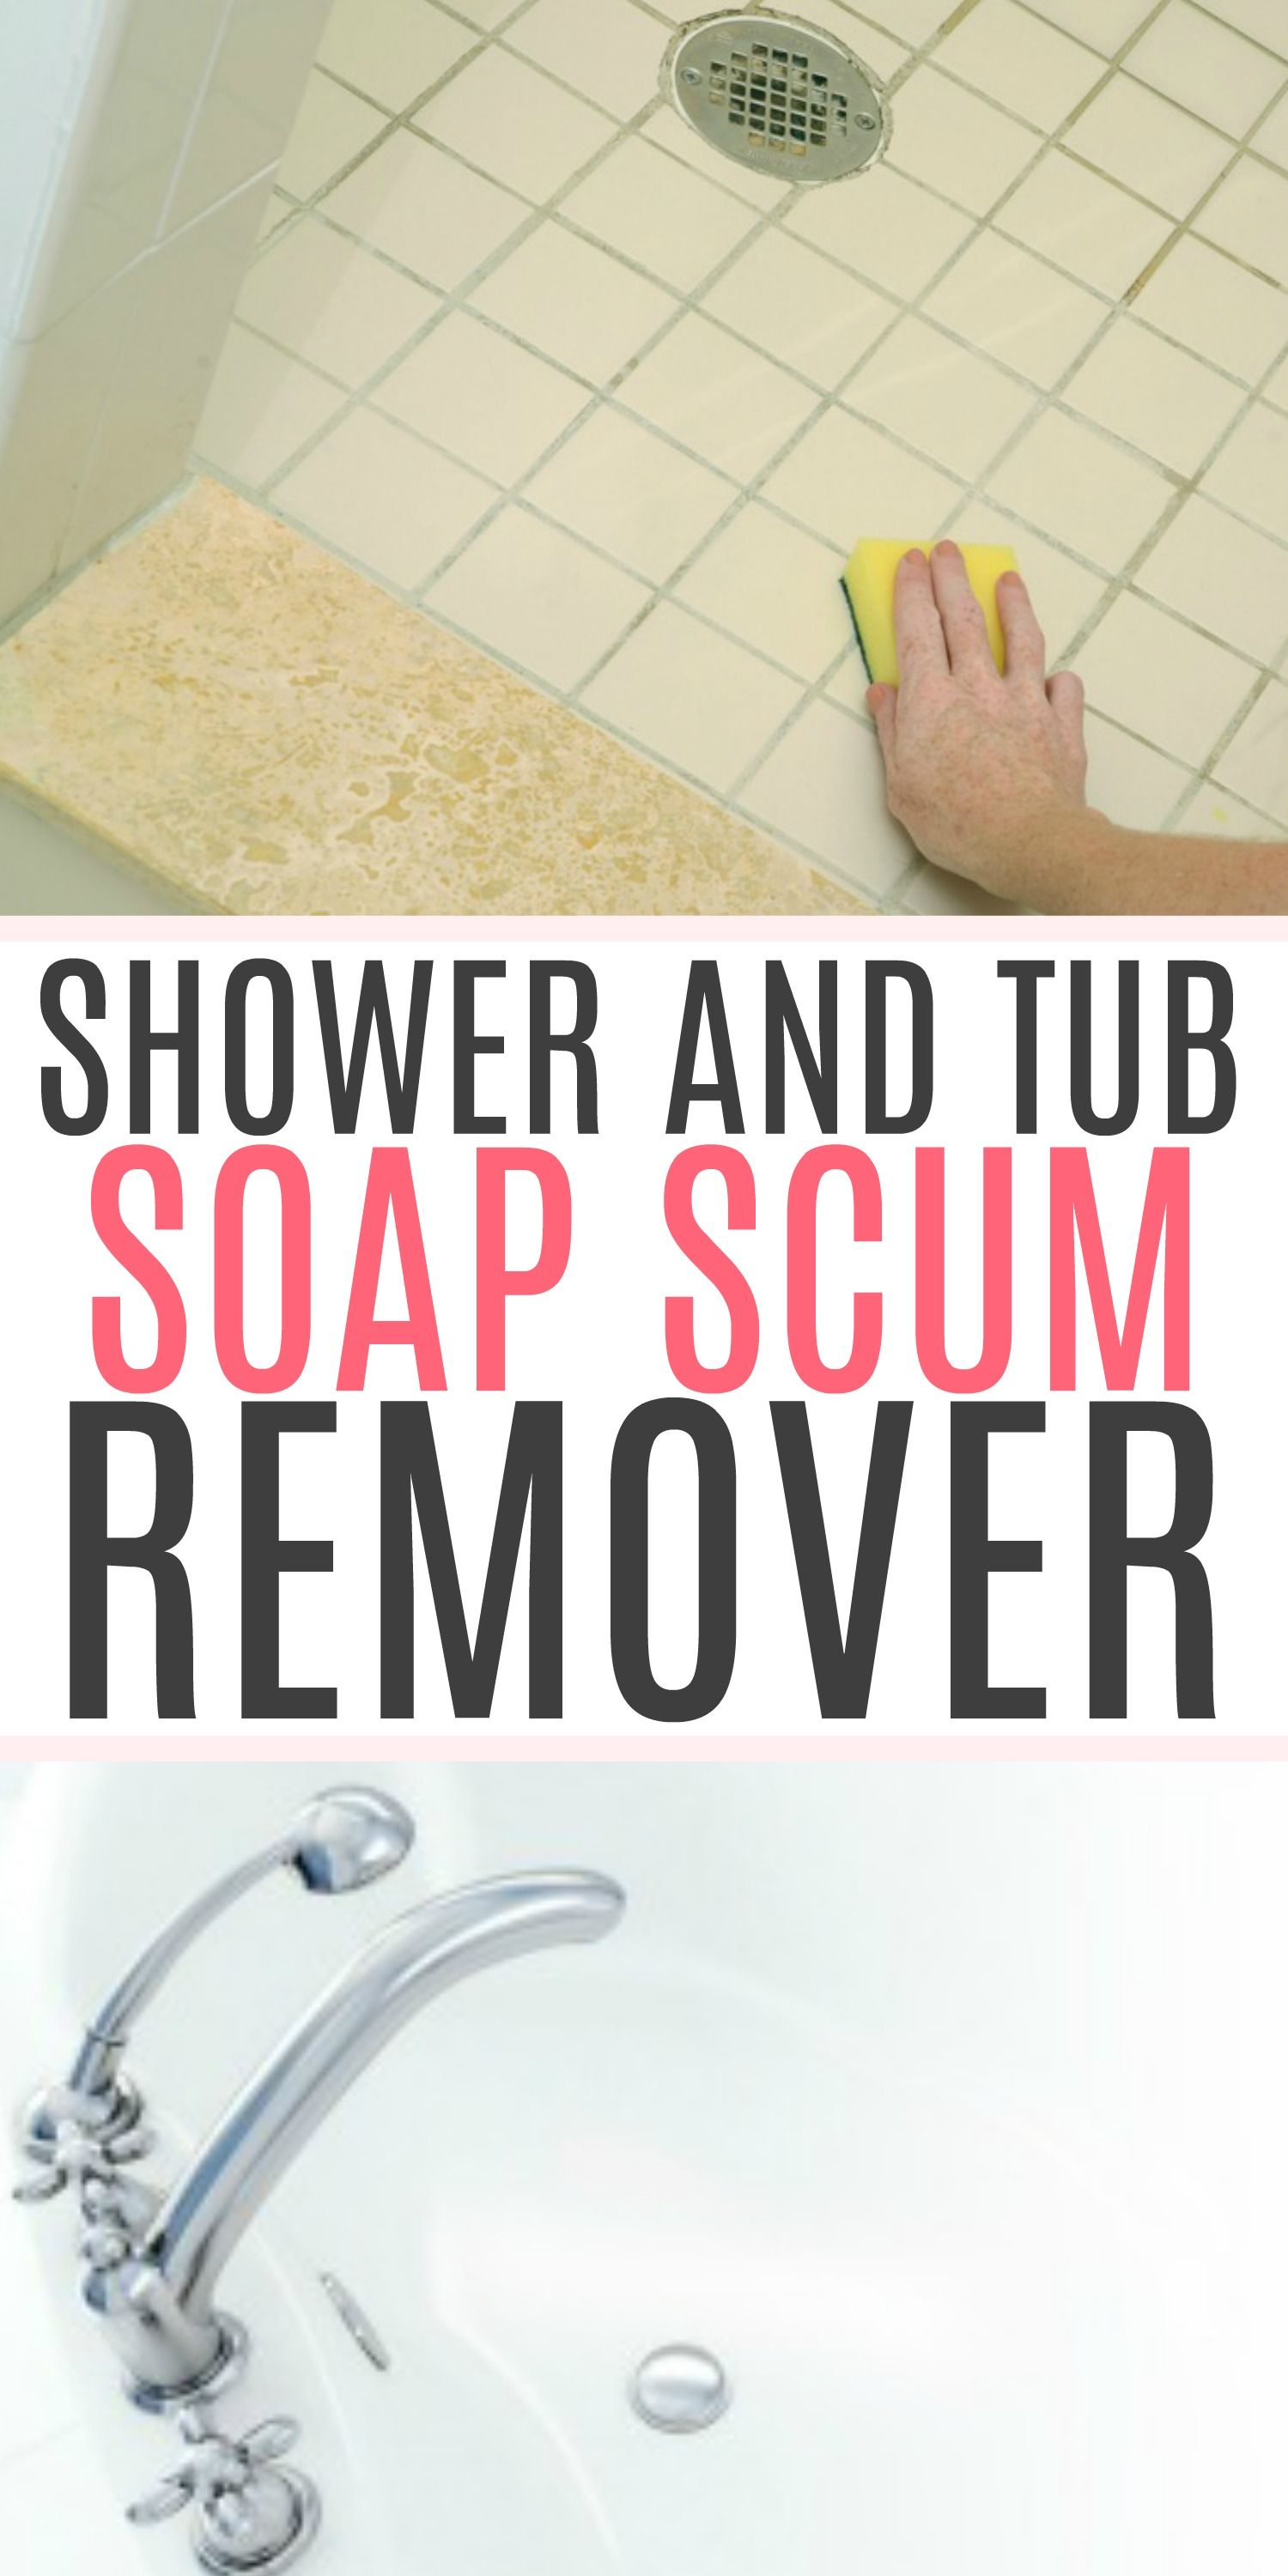 The Best Soap Scum Remover With Images Best Soap Scum Remover